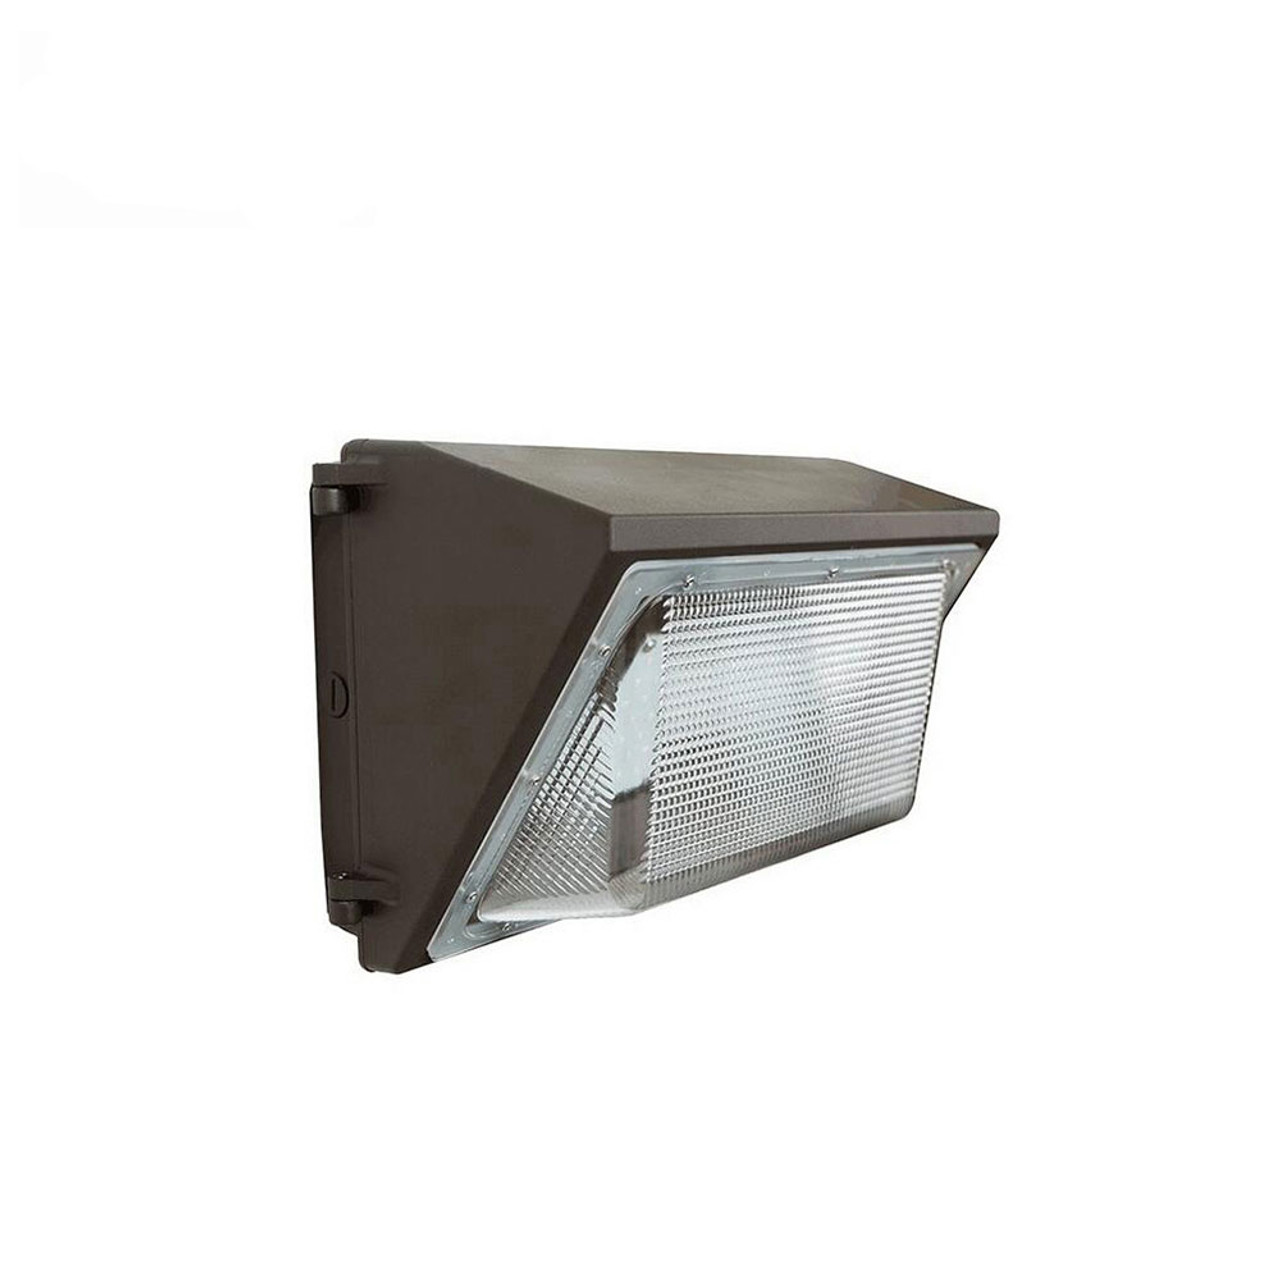 LED Wall Pack, 80 Watt, 10400 lumen, 5000 Kelvin, 100-277 volt, UL and DLC Listed